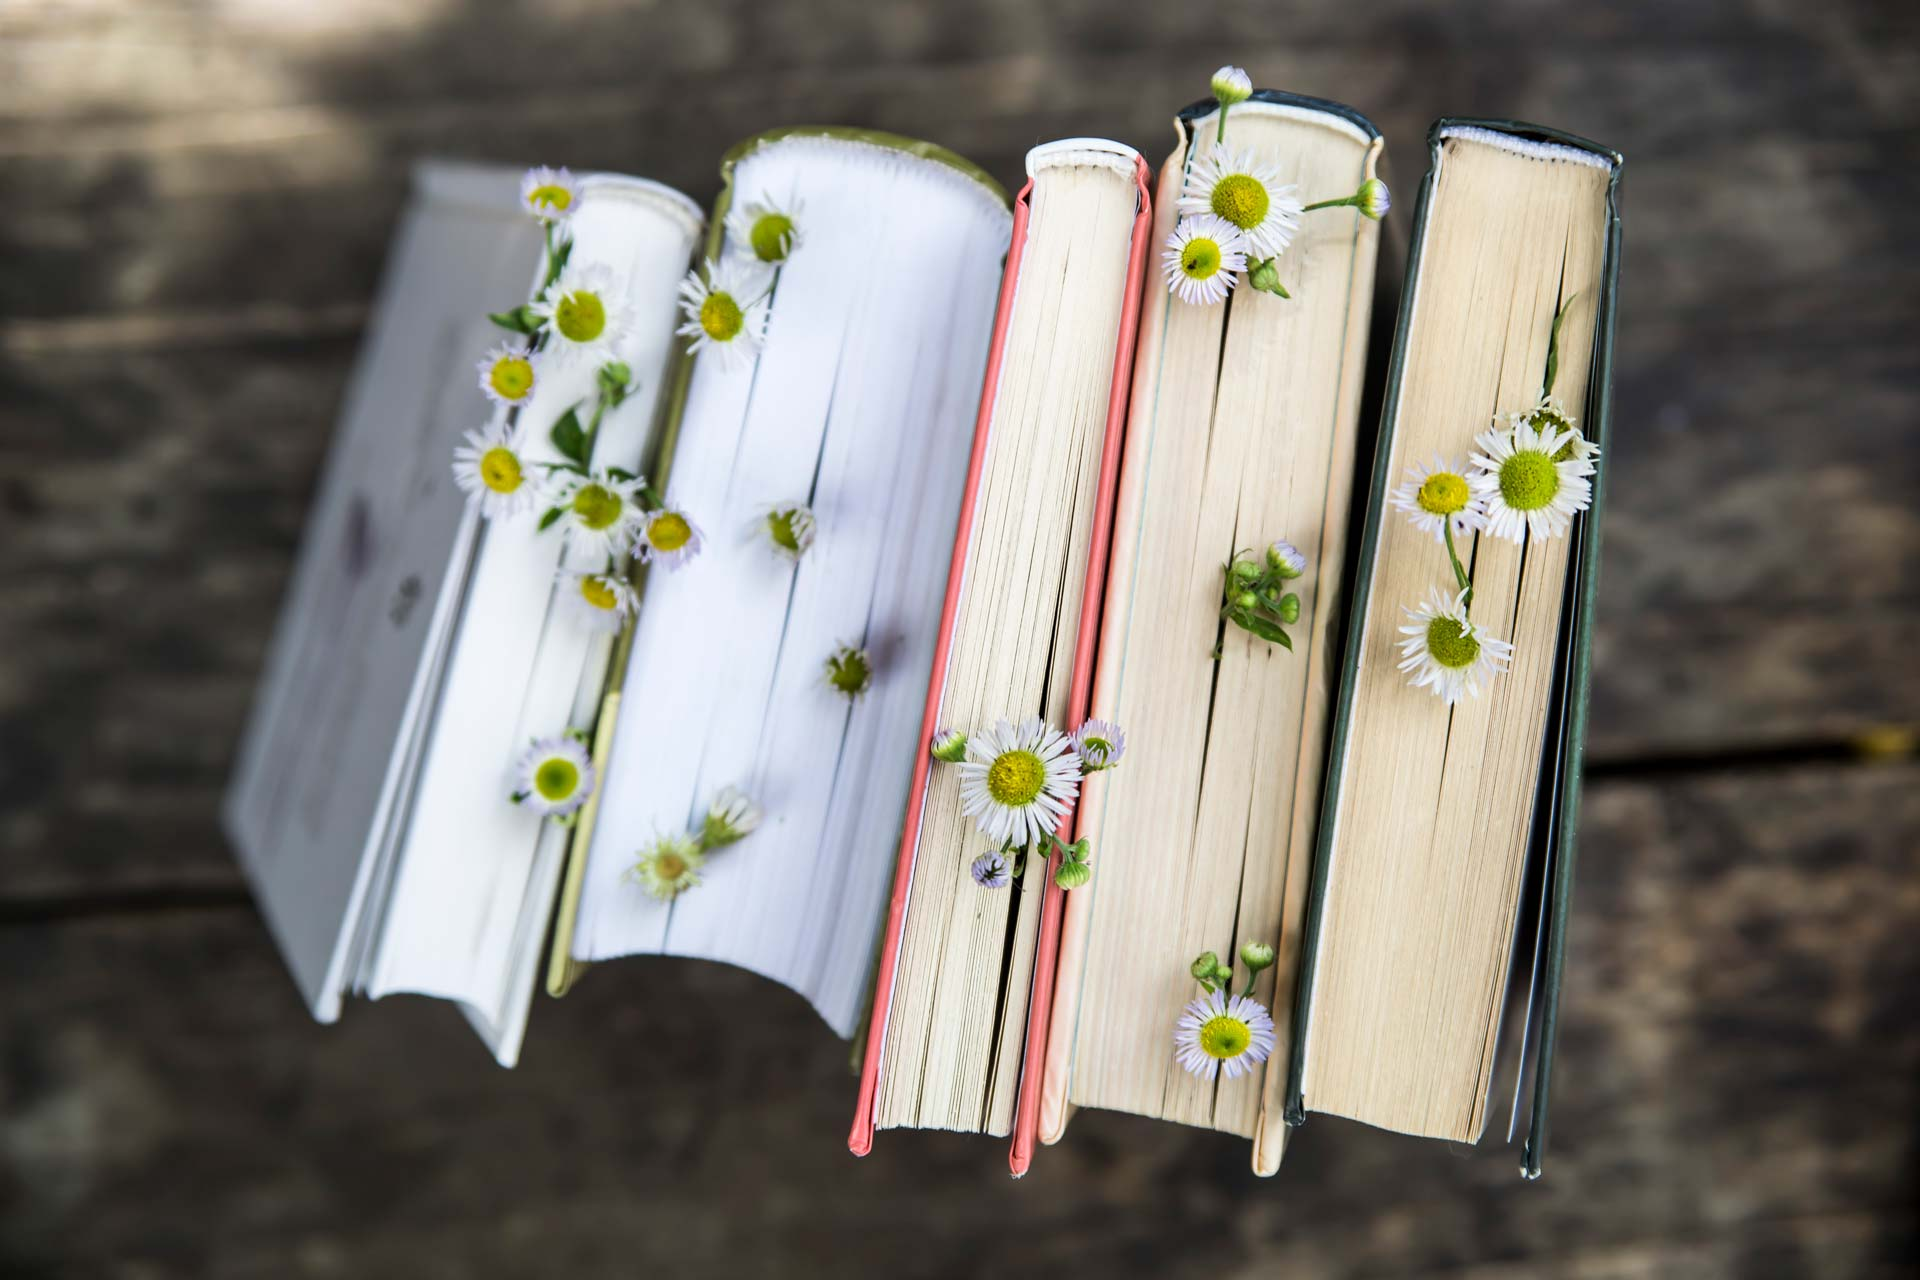 Five books about sustainability standing up with daisy flowers poking out from pages